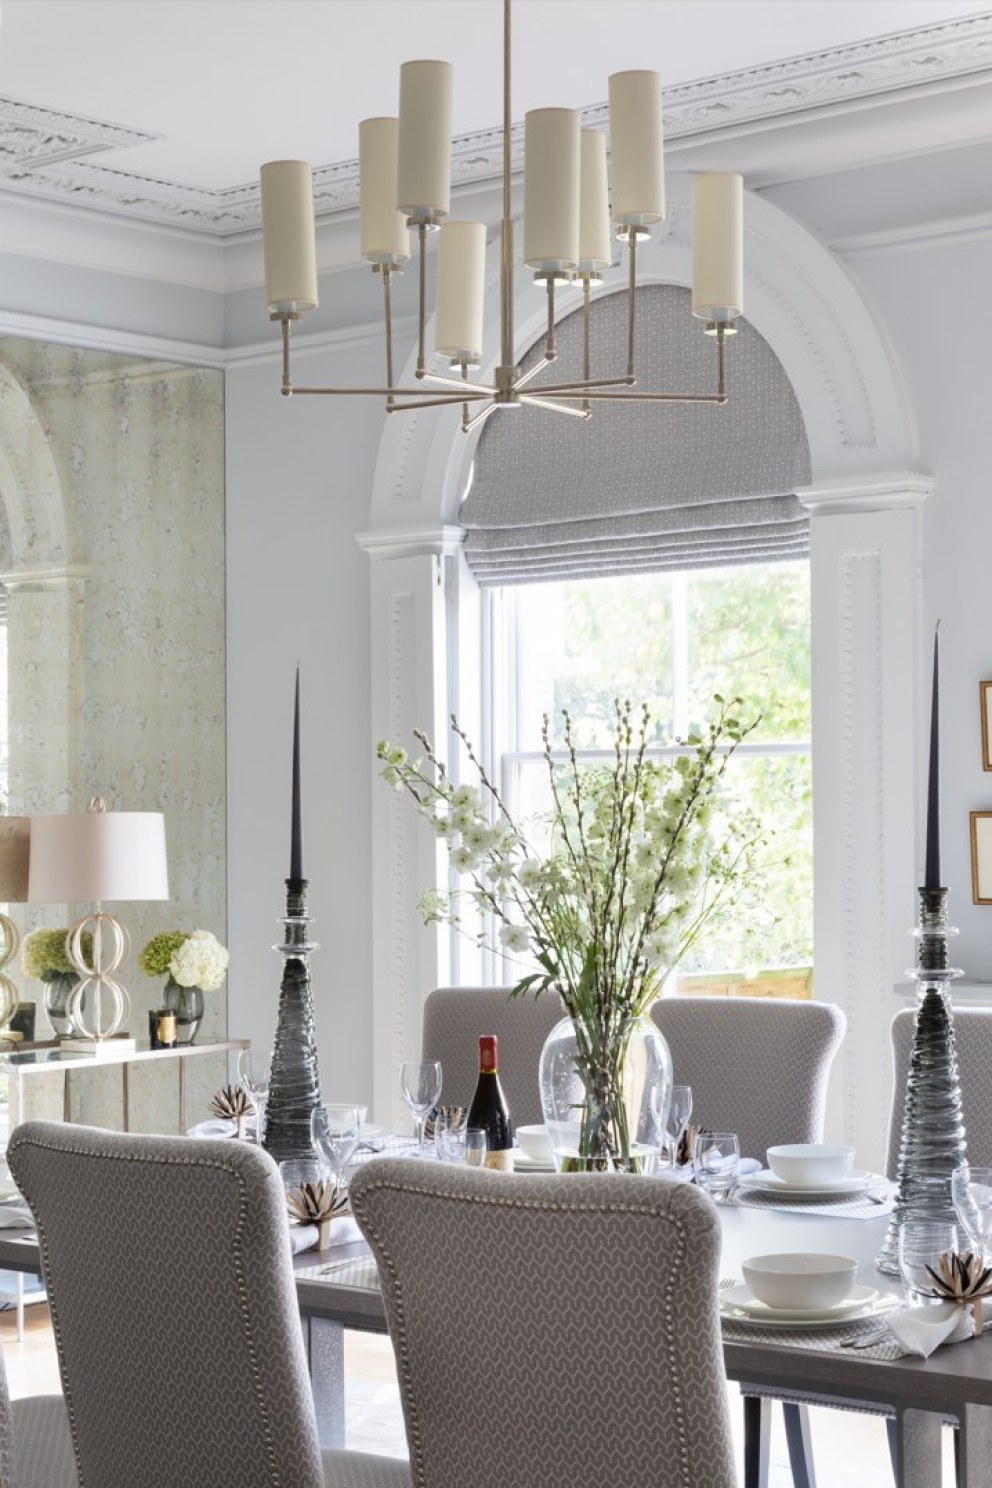 Lincolnshire Townhouse  | Dining room details | Interior Designers